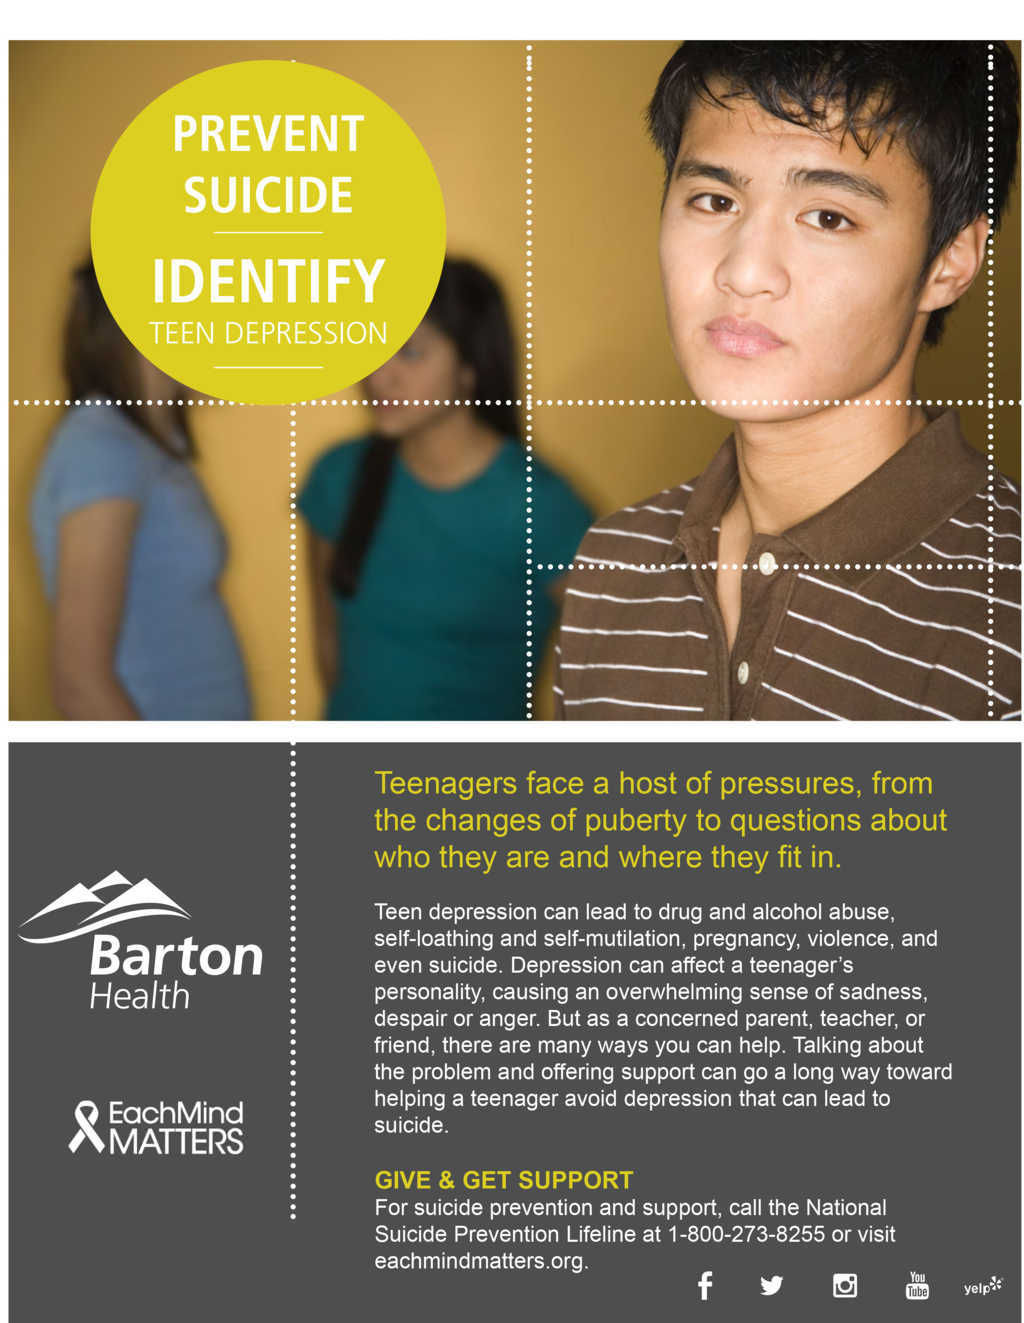 Prevent Suicide, Identify Teen Depression